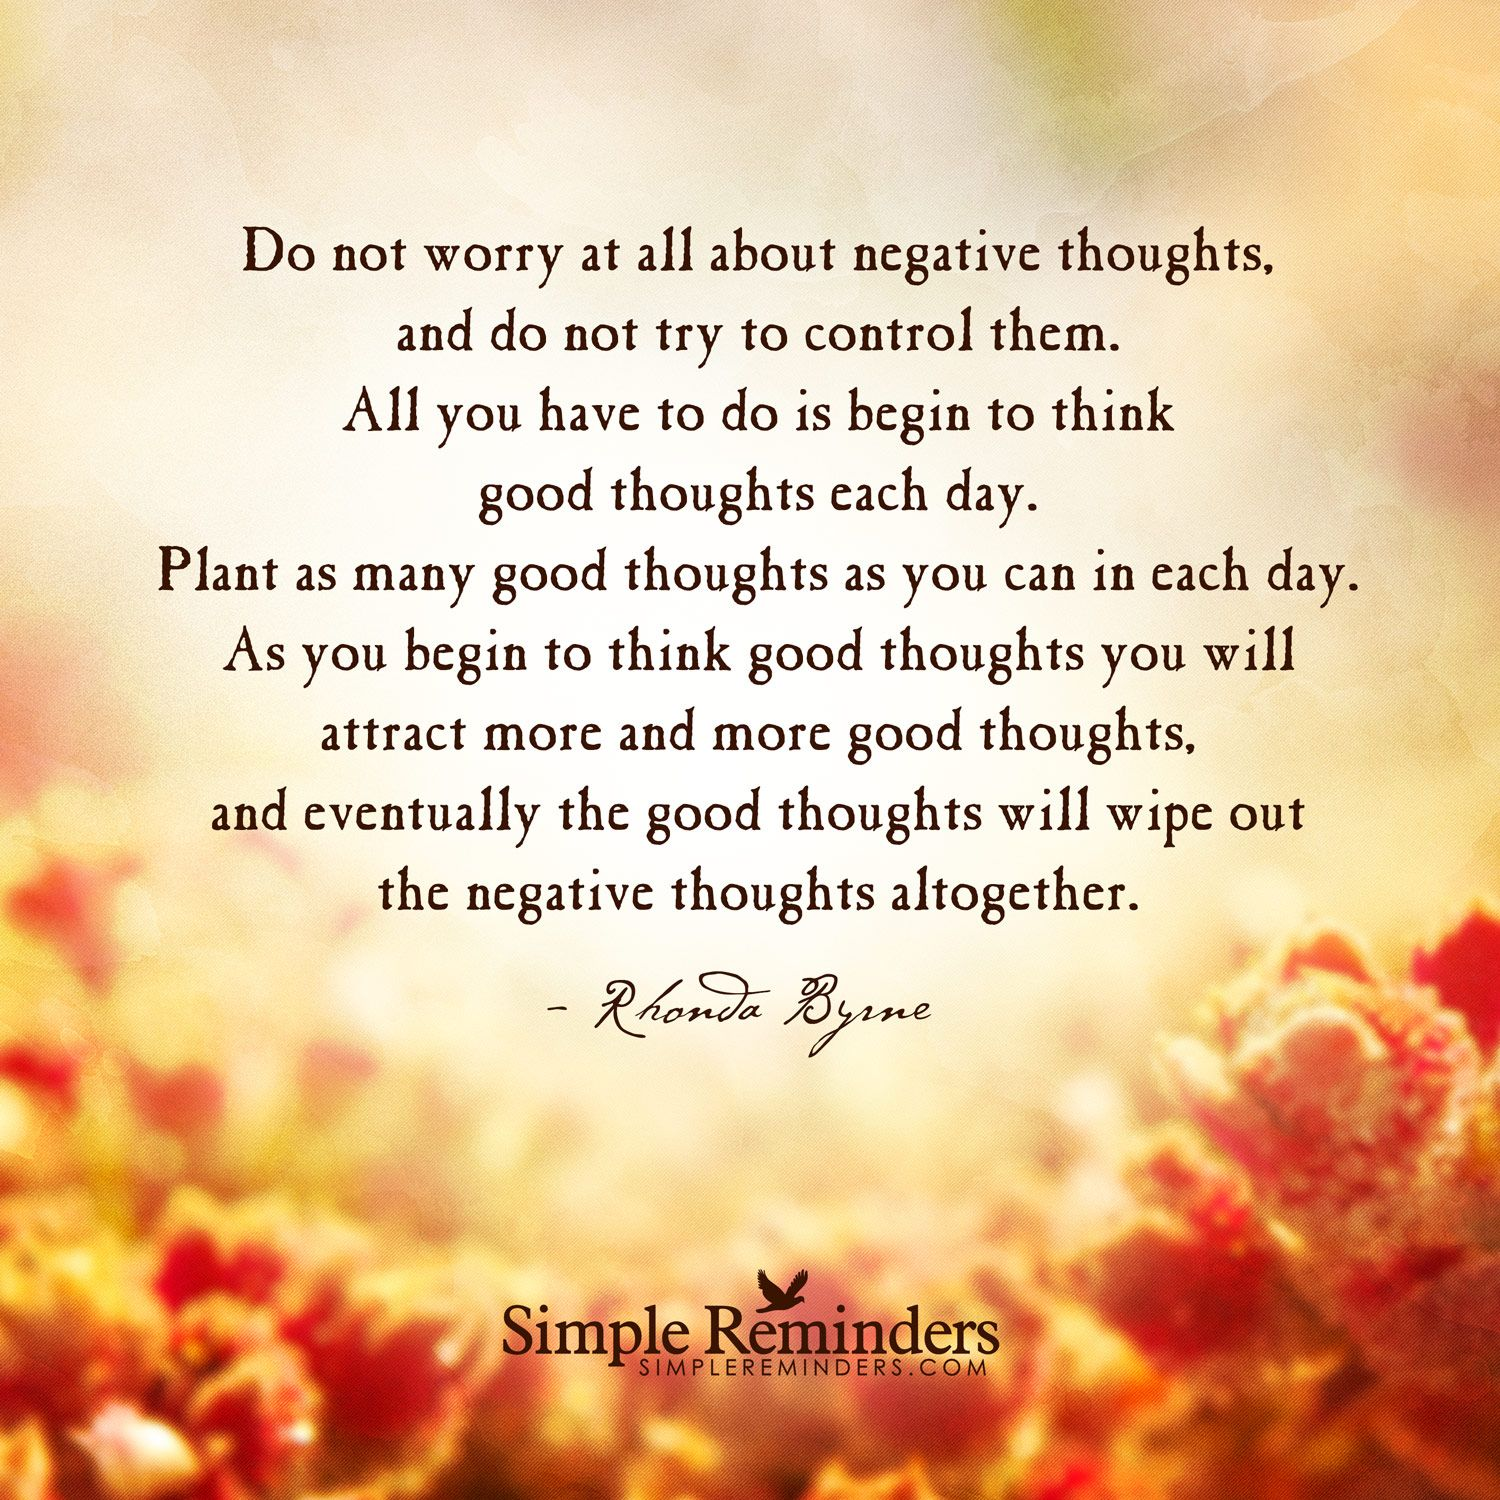 """Rhonda+Byrne:+Do+not+worry+at+all+about+negative+thoughts ..."